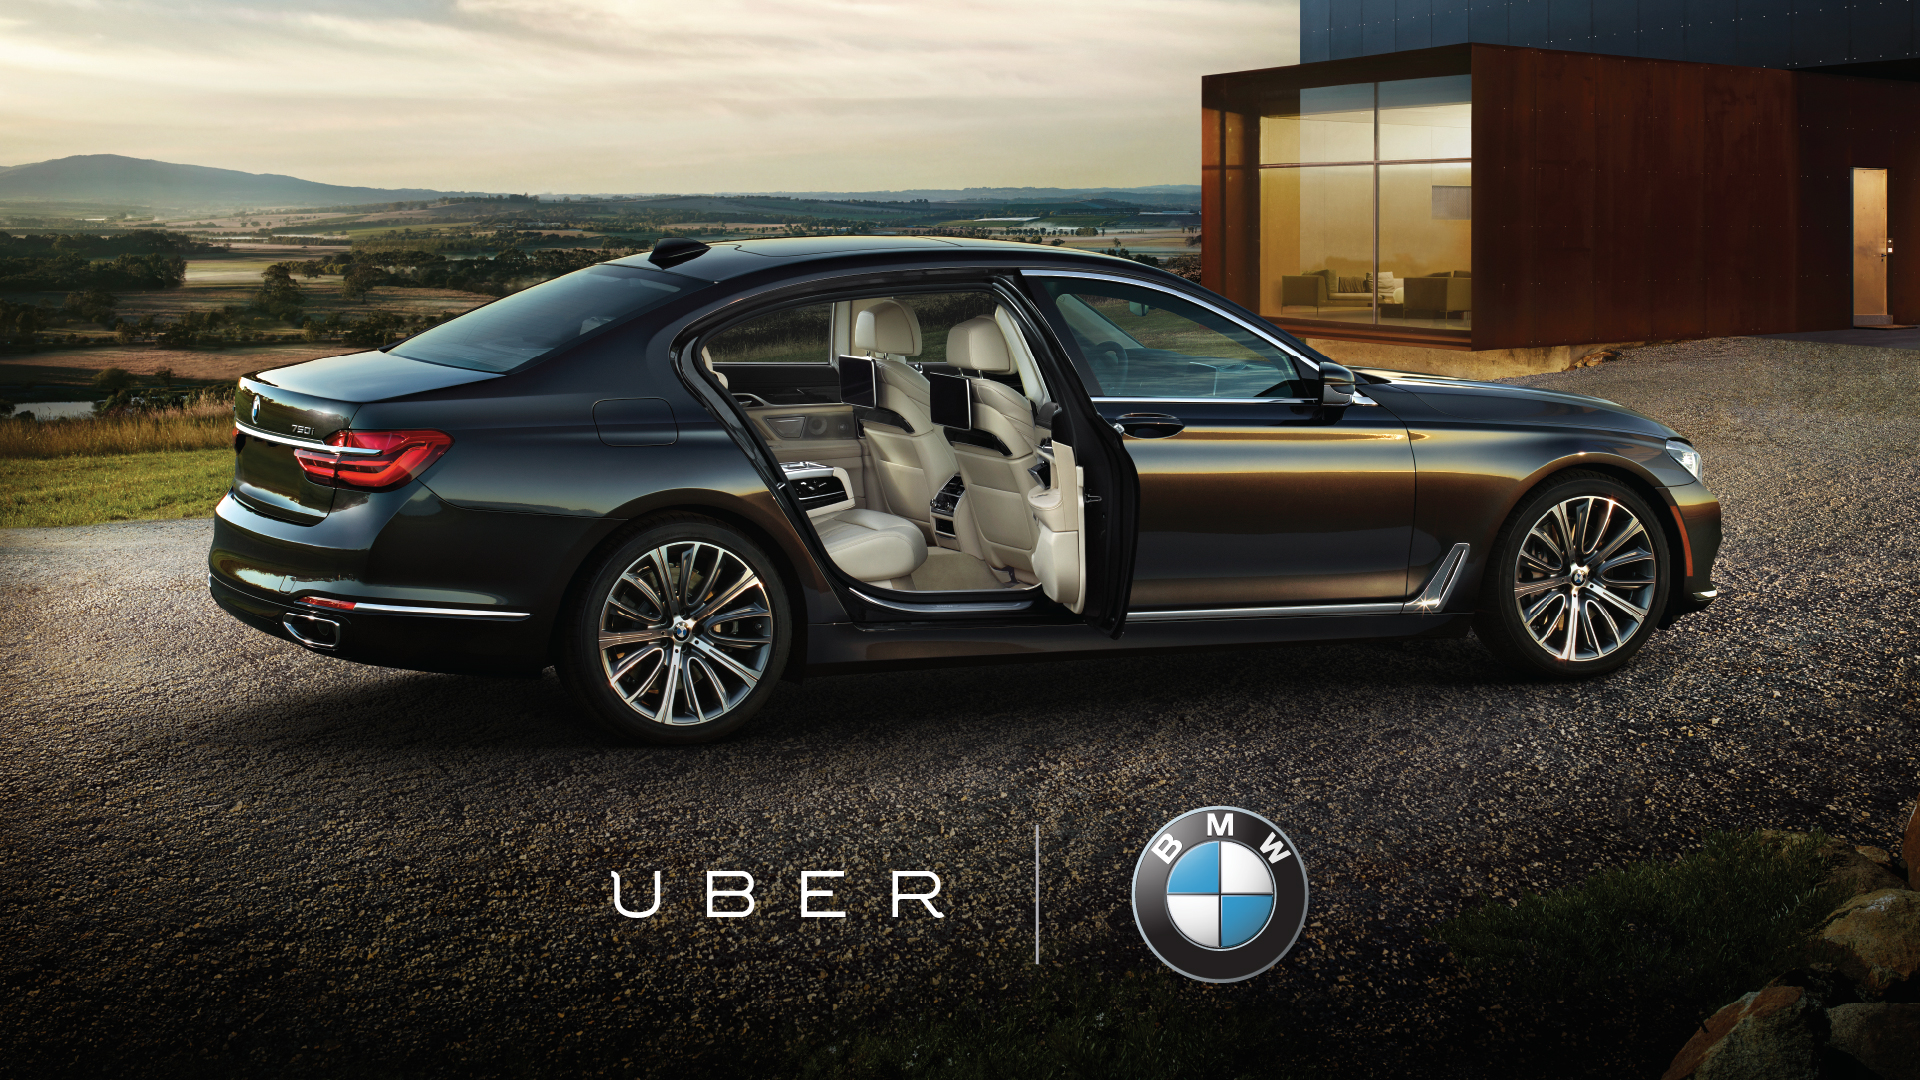 Your BMW 7 Series is Arriving Now | Uber Newsroom